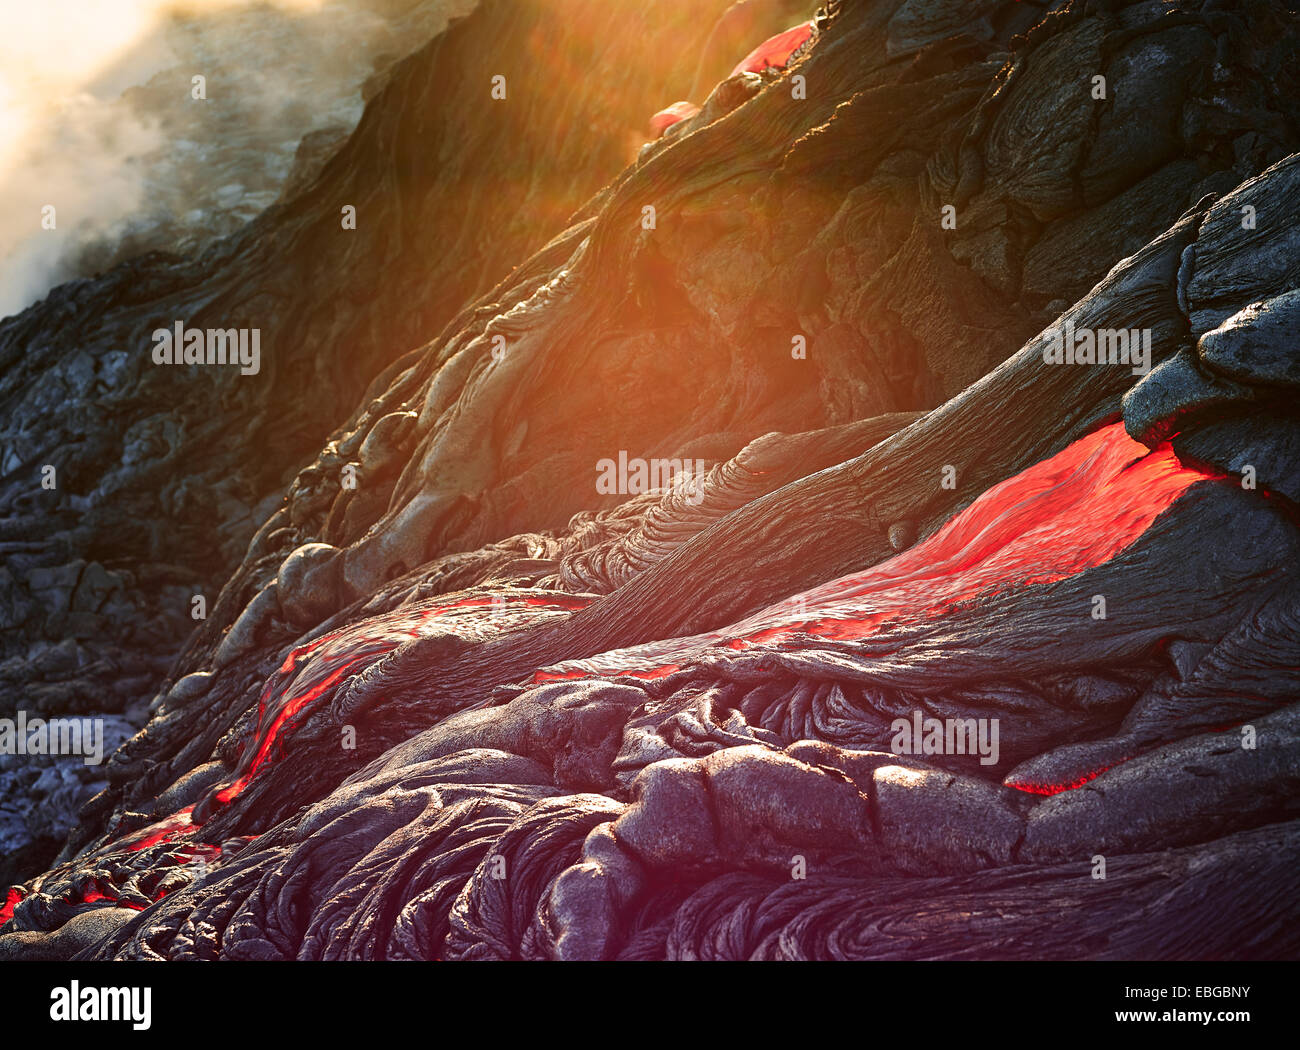 Puʻu ʻŌʻō or Puu Oo volcano, volcanic eruption, lava, red hot lava flow, Hawaiʻi-Volcanoes-Nationalpark, USA, Hawaii - Stock Image